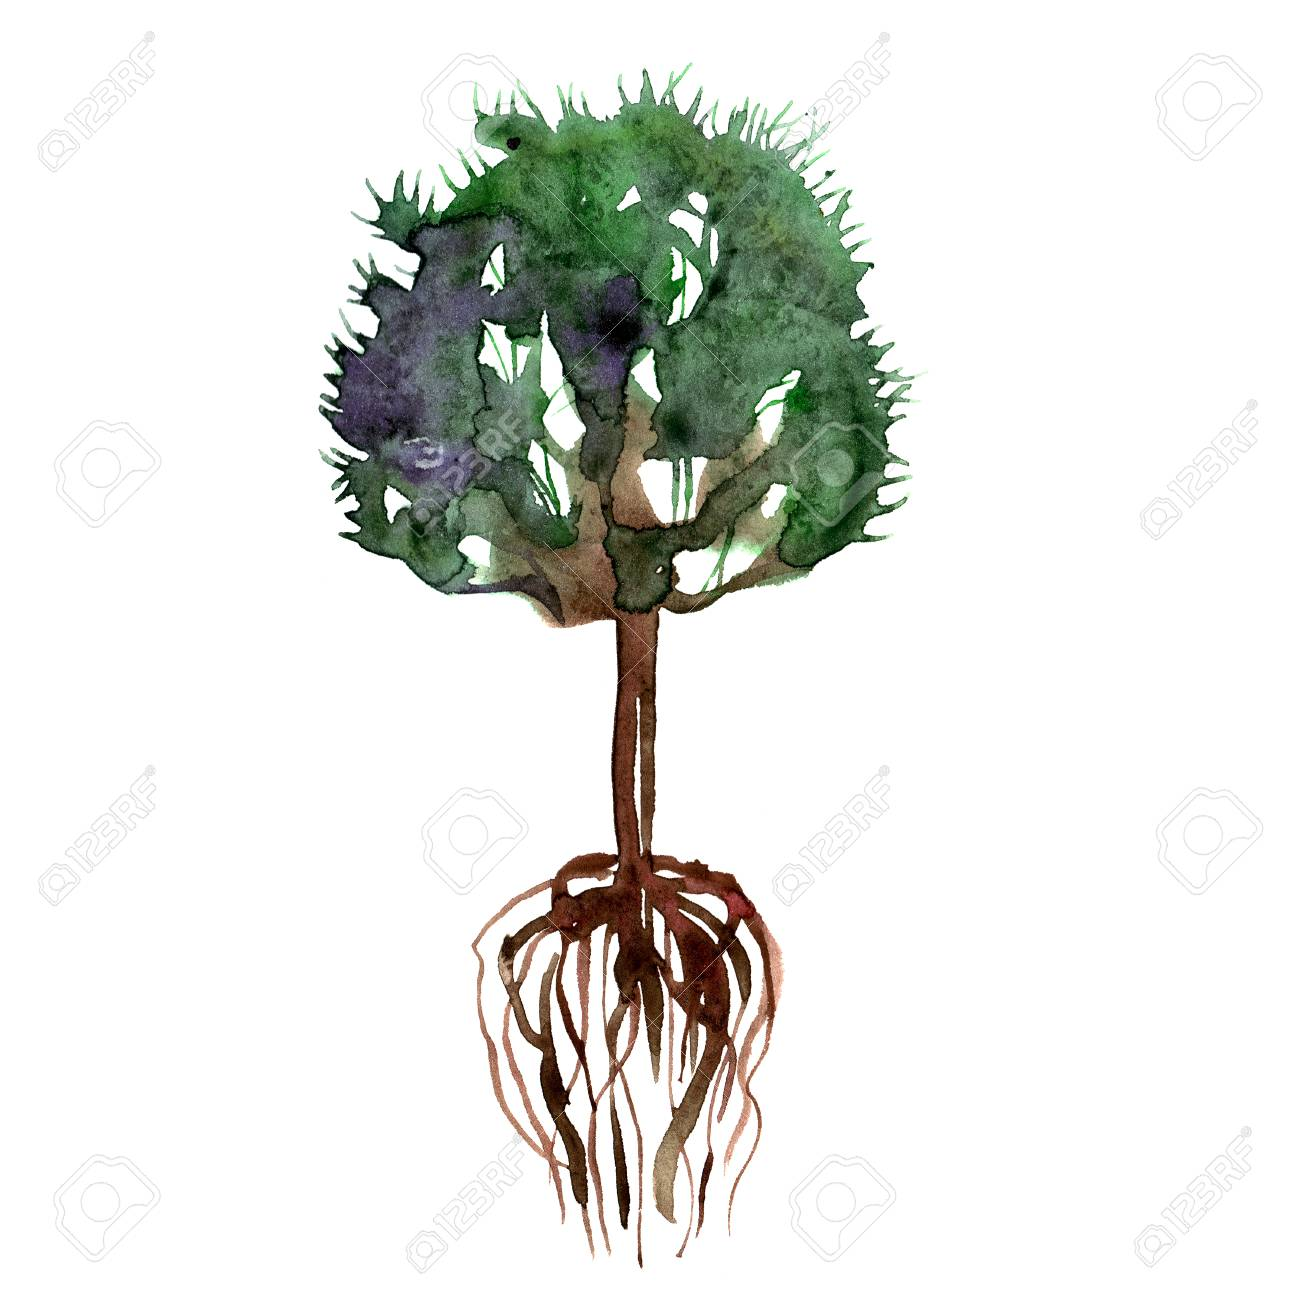 Watercolor Hand Painted Green Summer Tree And Roots Stock Photo Picture And Royalty Free Image Image 83689196